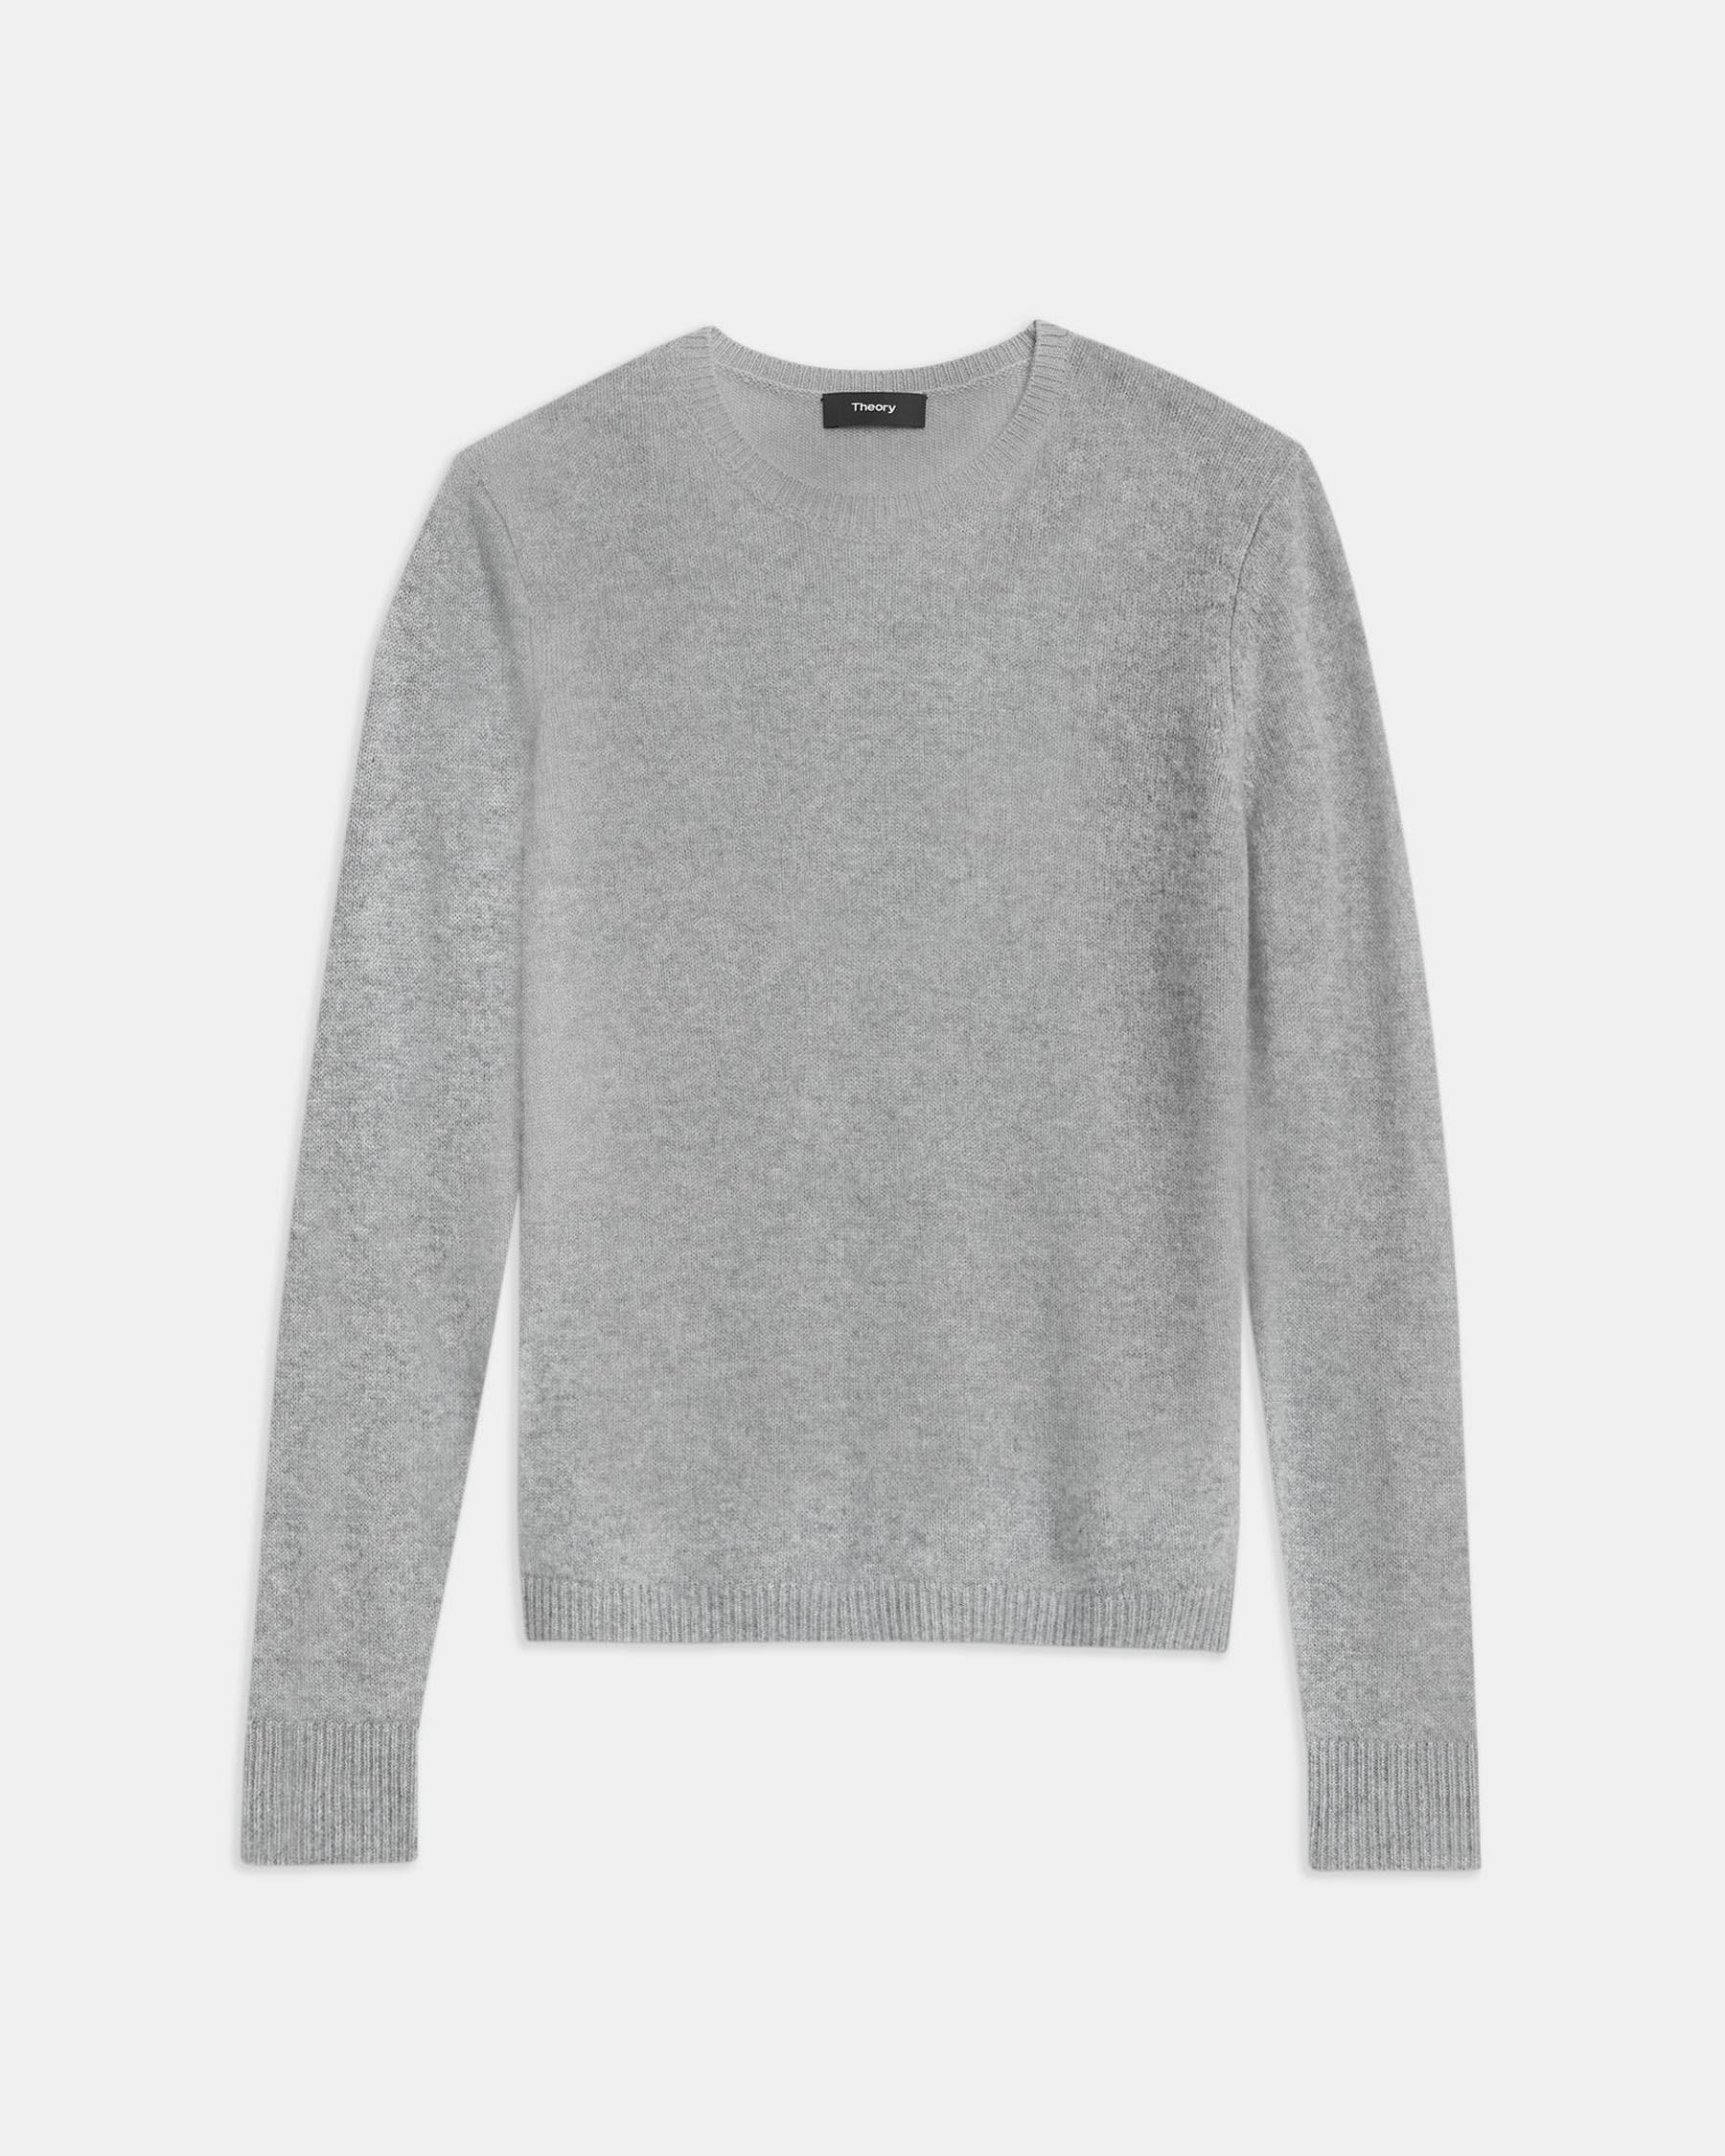 Crewneck Sweater in Feather Cashmere 5